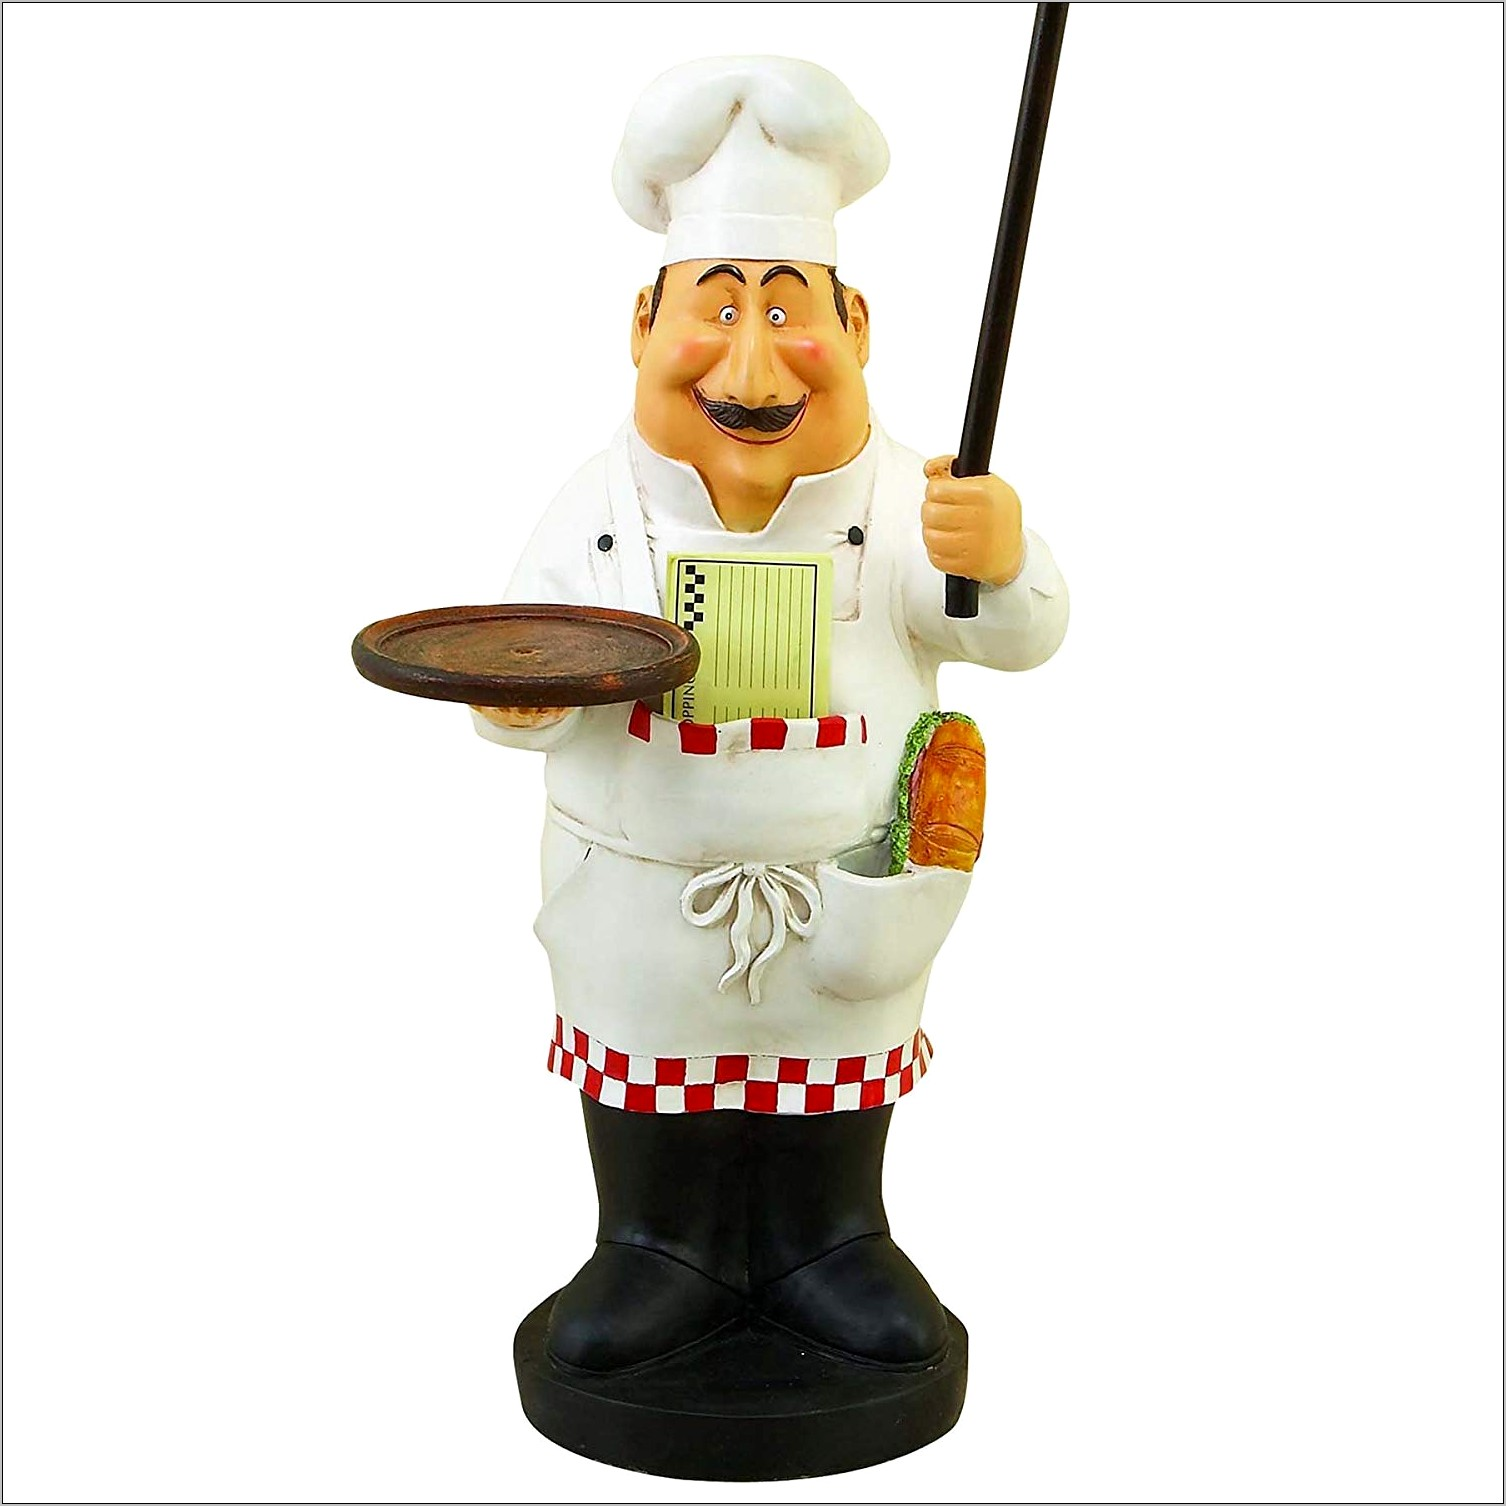 Chef Figurine With Chalkboard Kitchen Decor